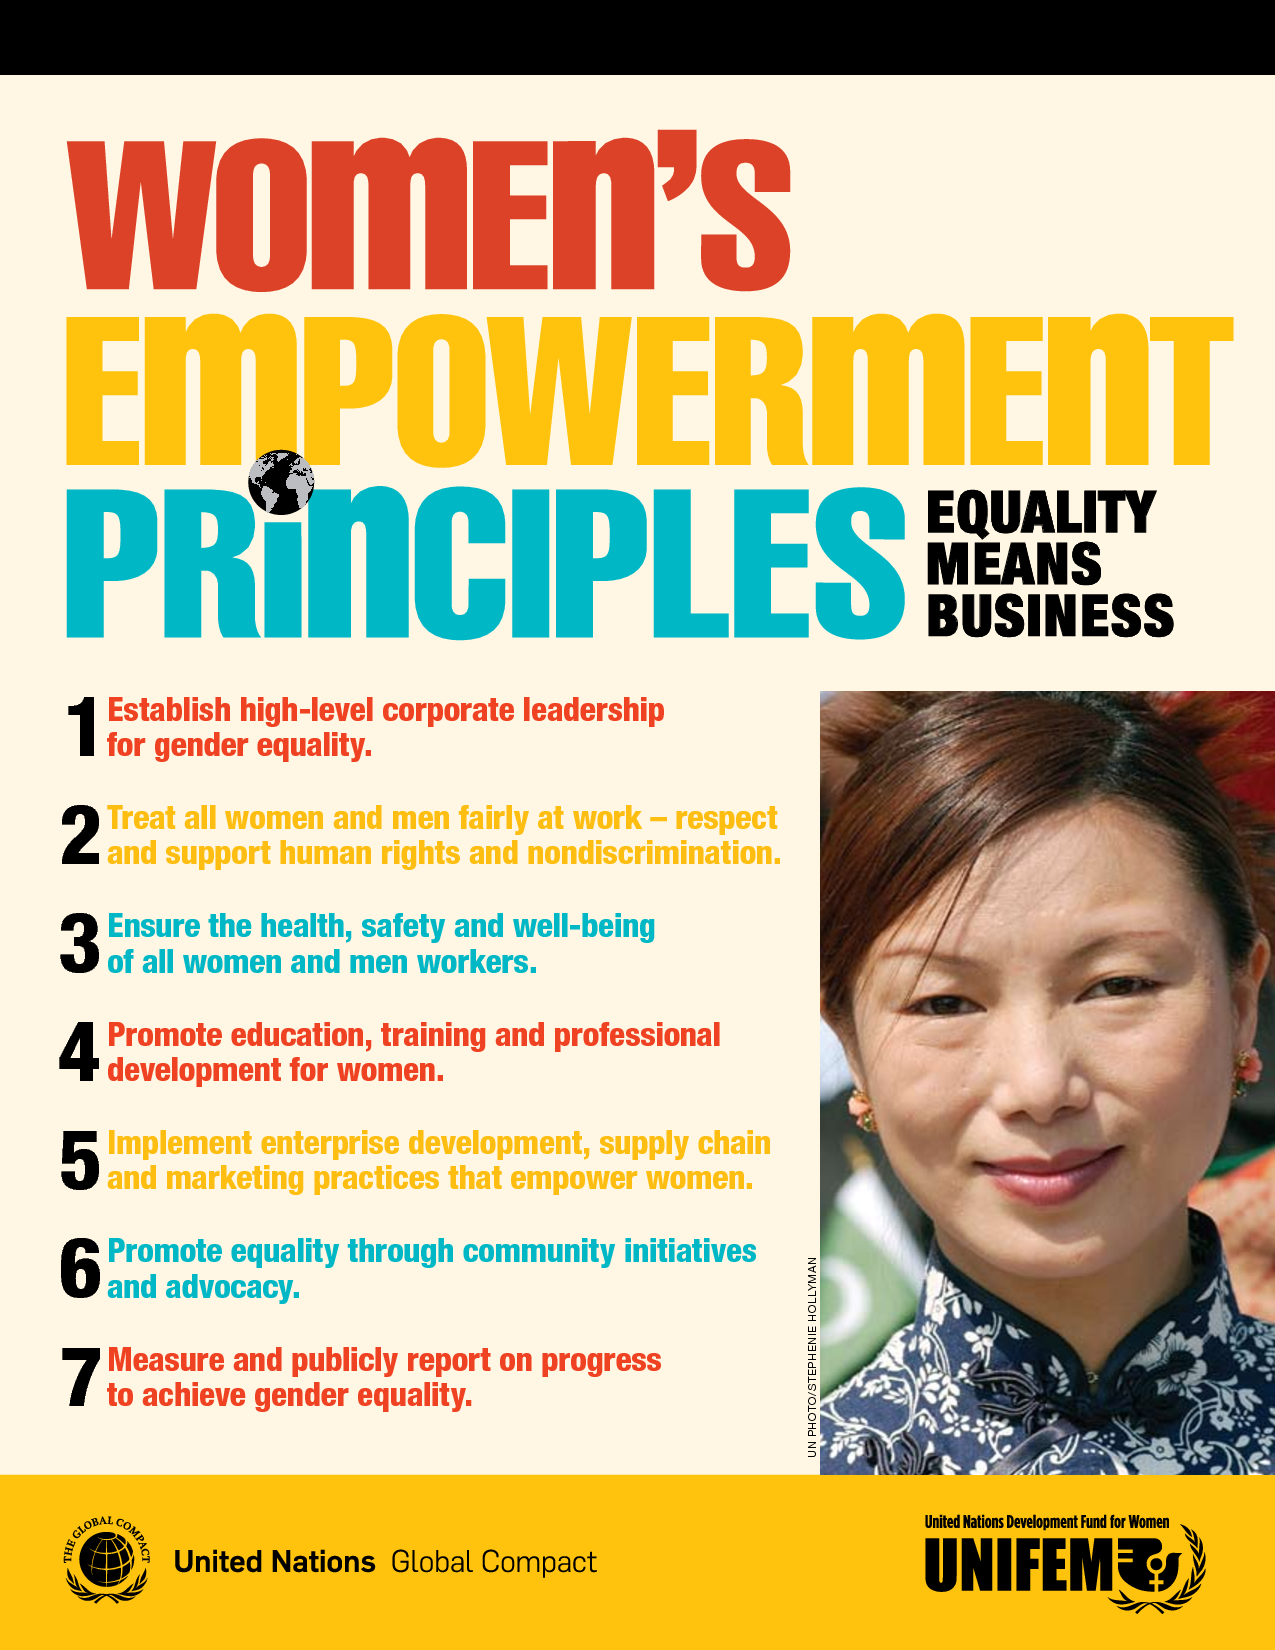 Womens Empowerment Principles Wonder Woman Pinterest bedfbfbdccbaeebd